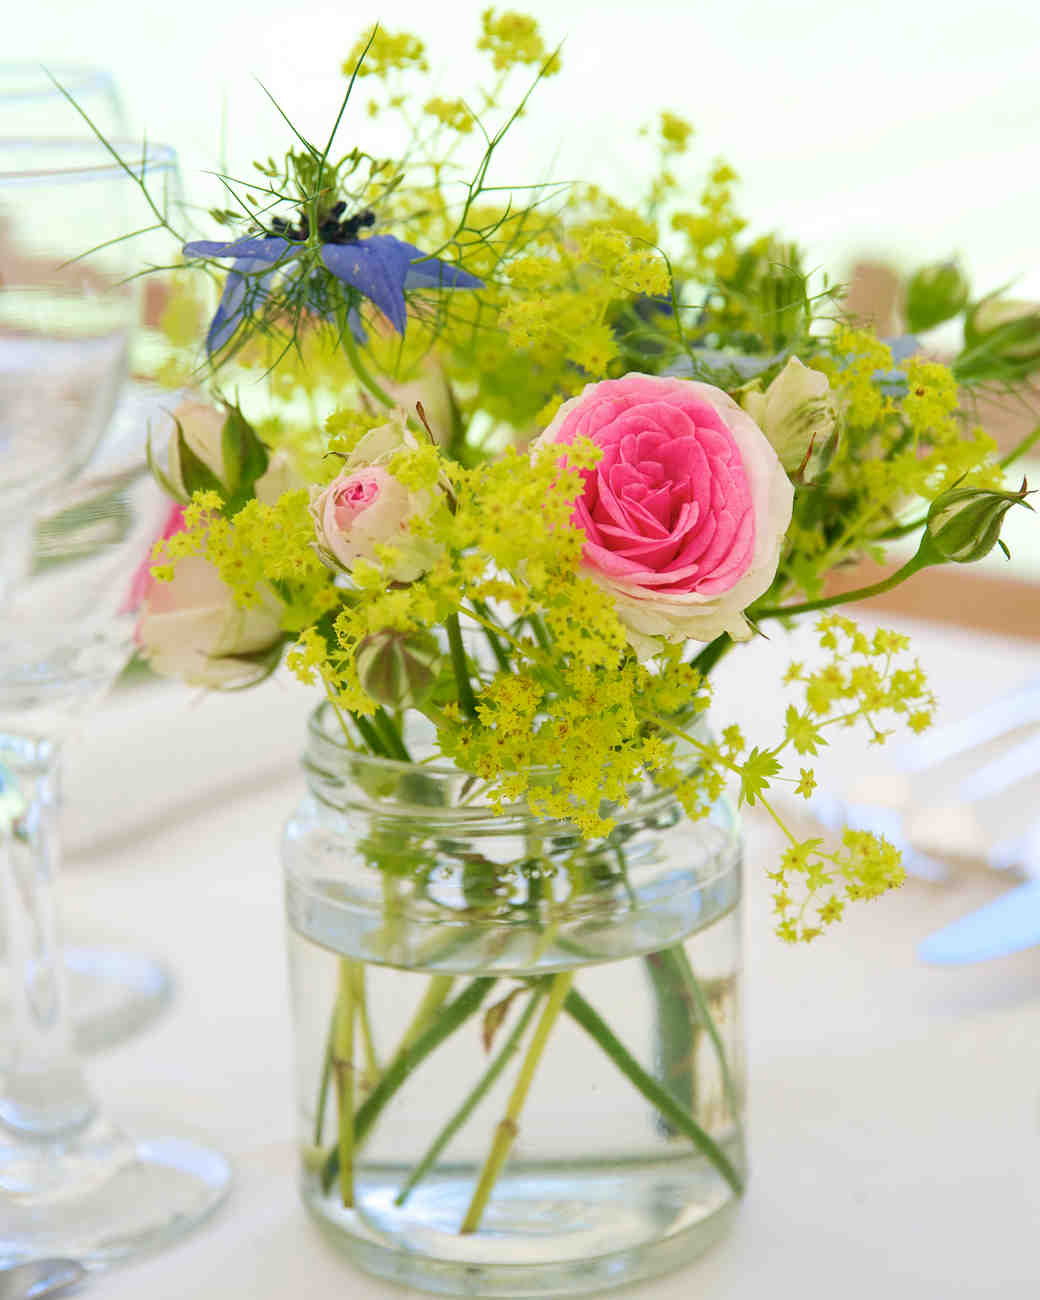 Wholesale Glass Vases Int'l - An importer of a wide selection of vase, terrariums, geometric, floral décor, and wedding centerpieces at lowest price.